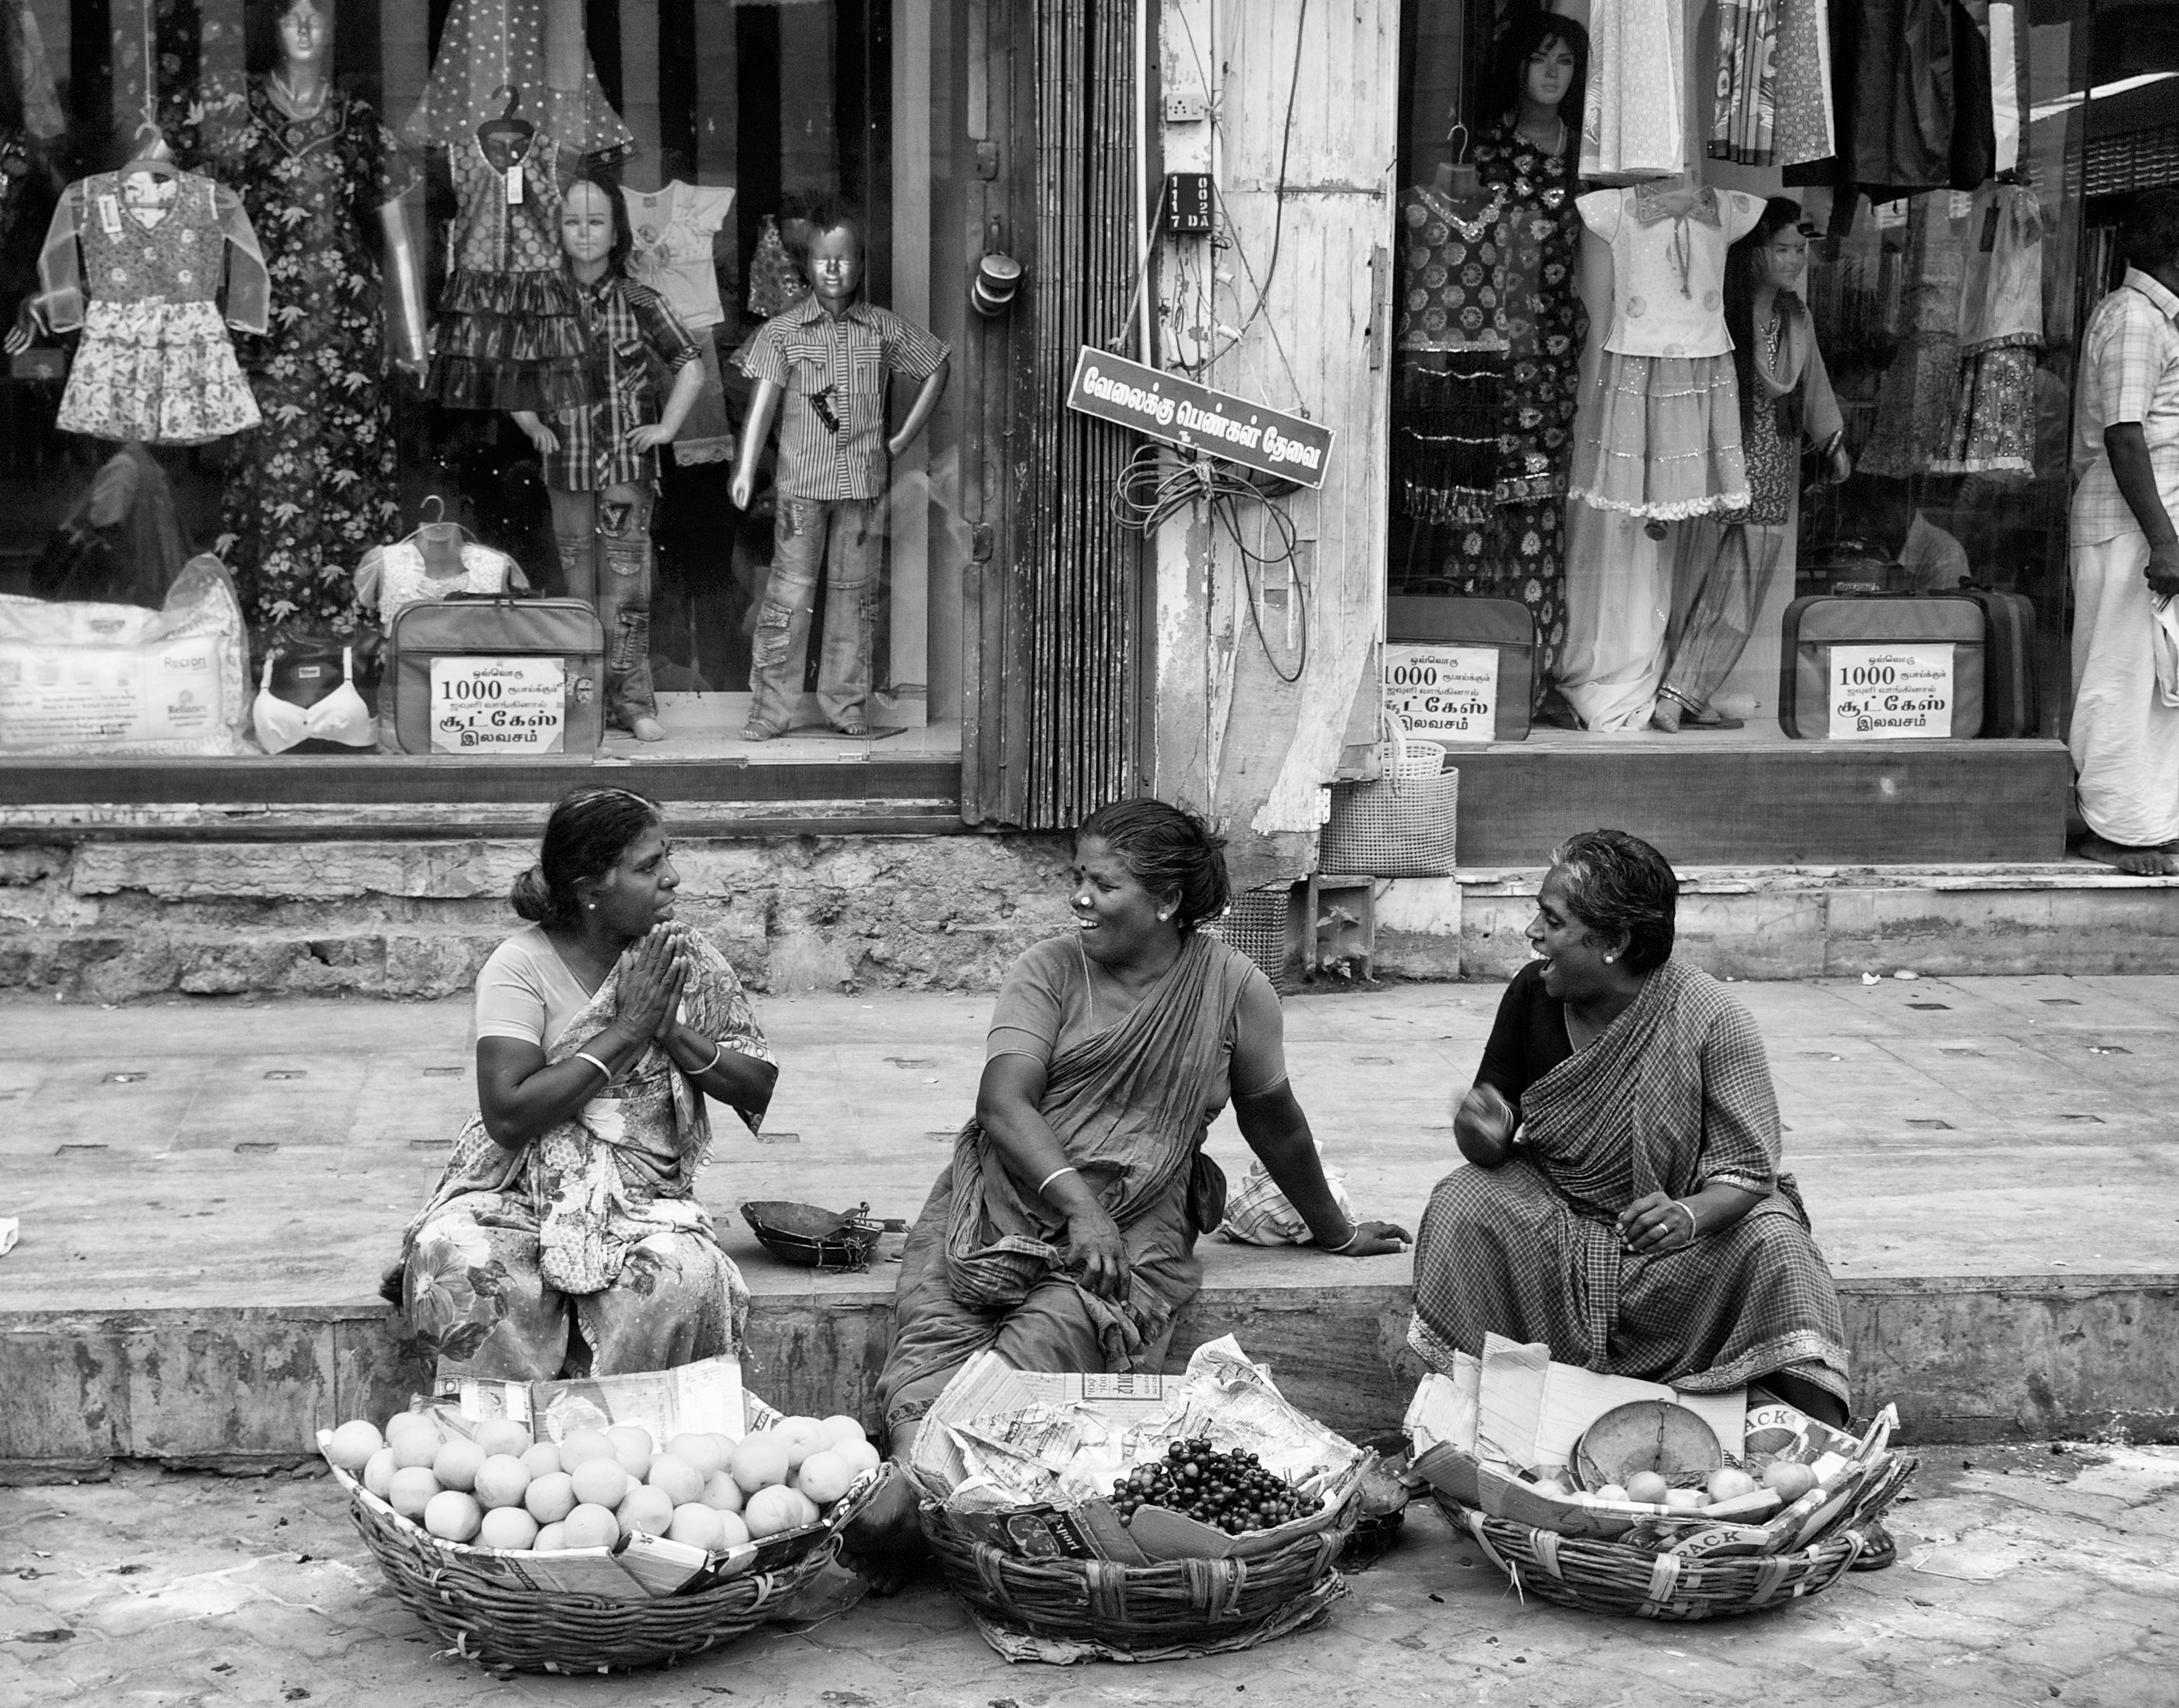 Street vendors, having an animated chat. Madurai, Tamil Nadu, India